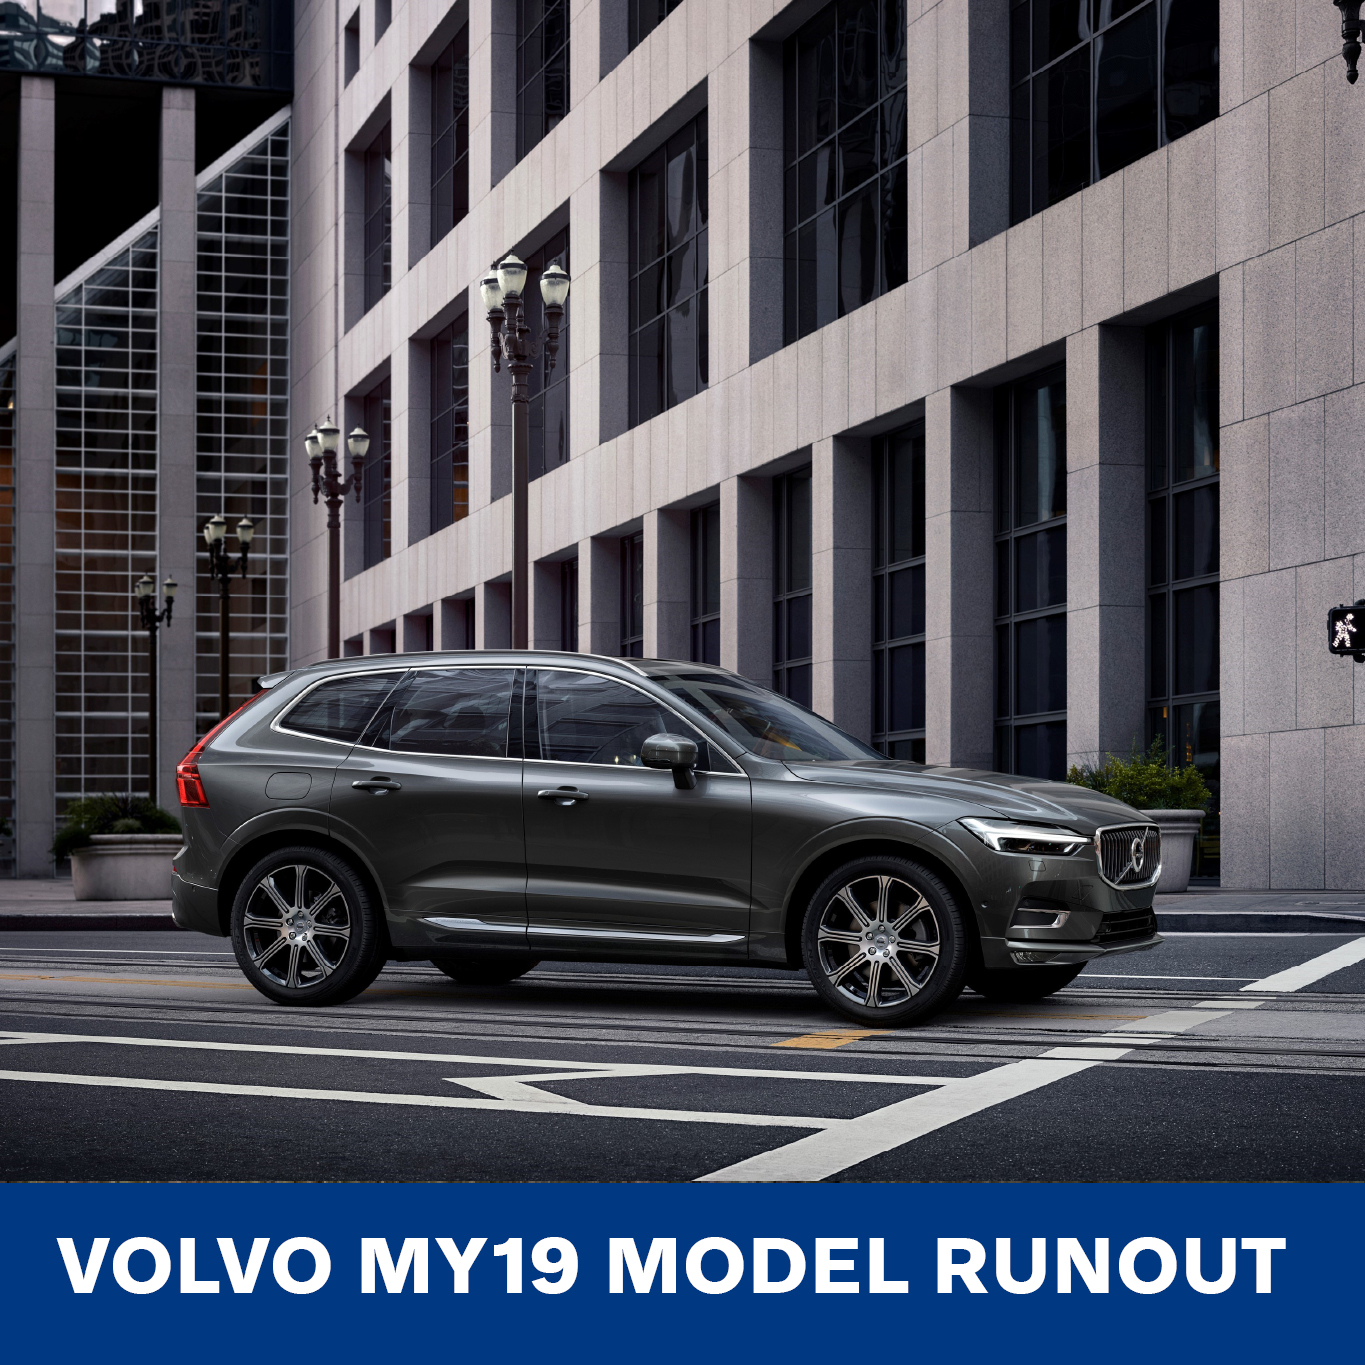 Volvo MY19 Model Runout